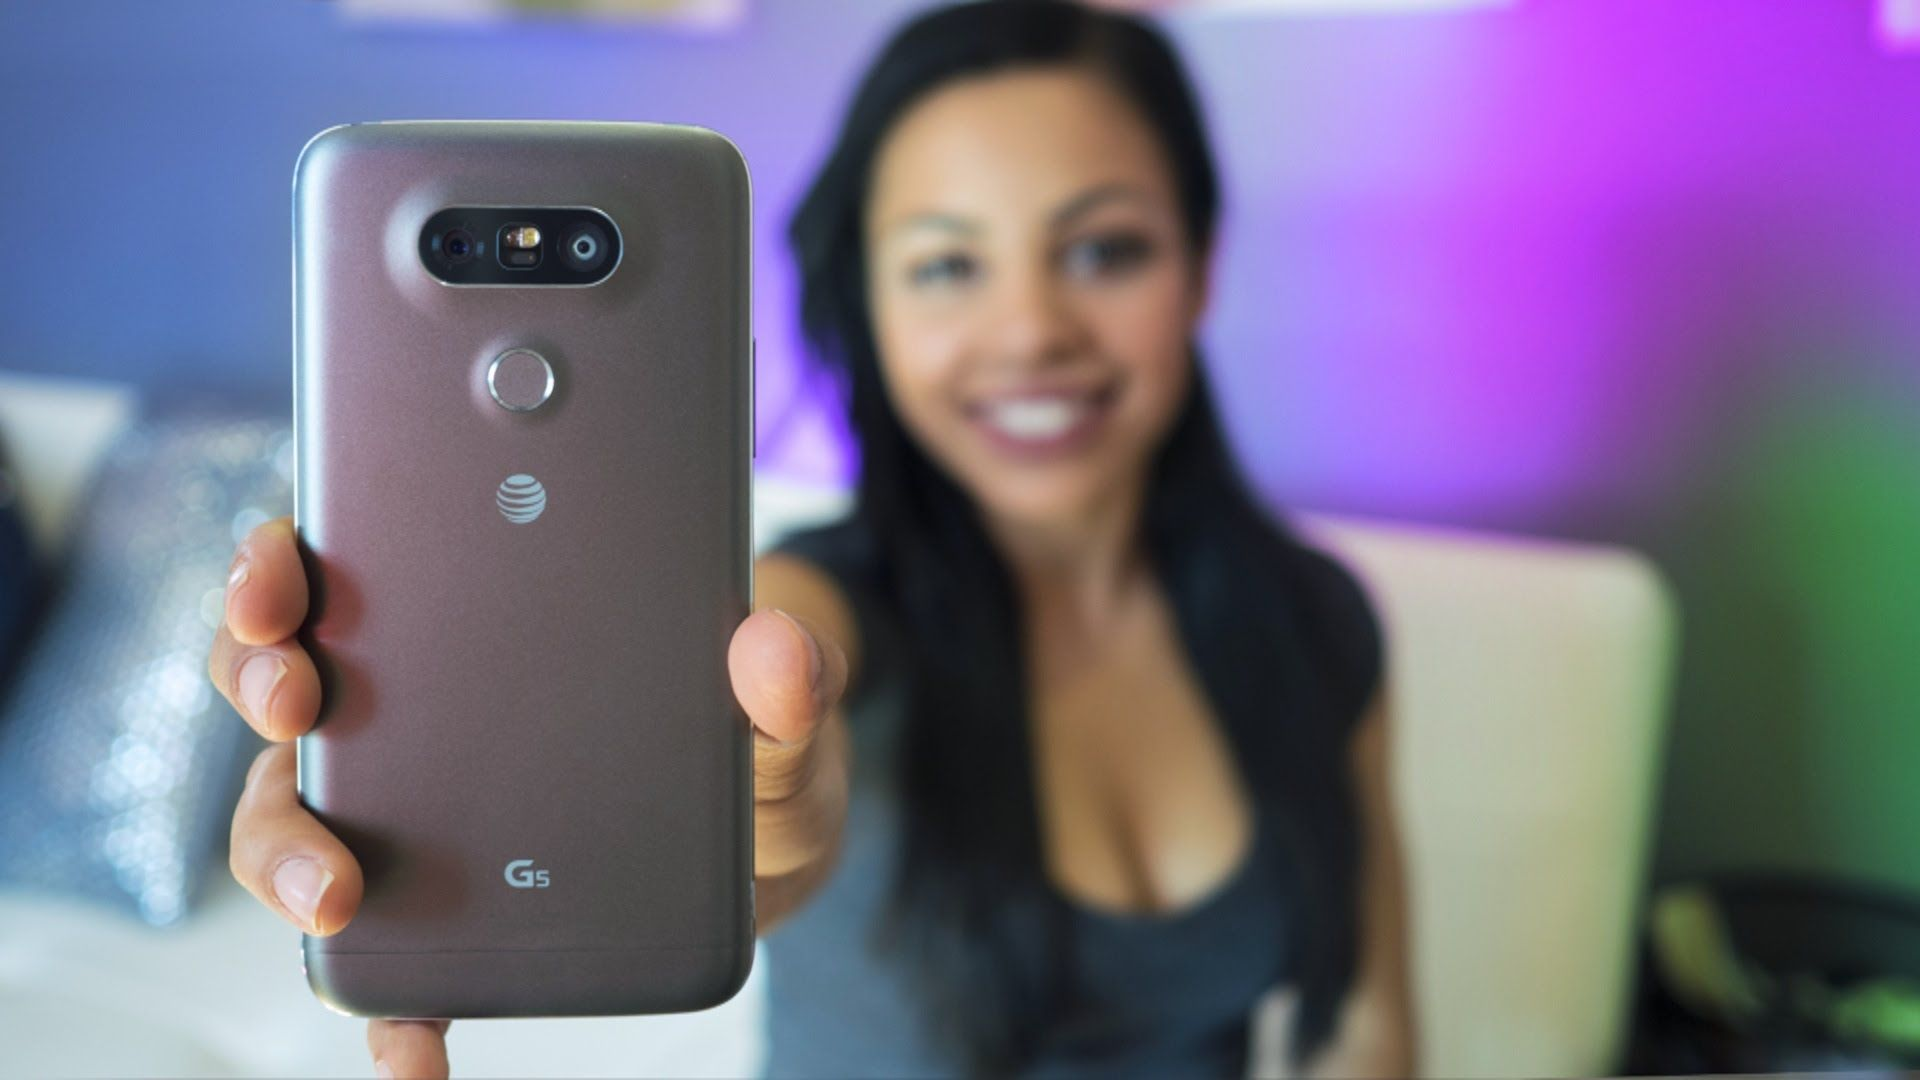 LG G5 Review! Cool photos, Smartphone photography, Photo